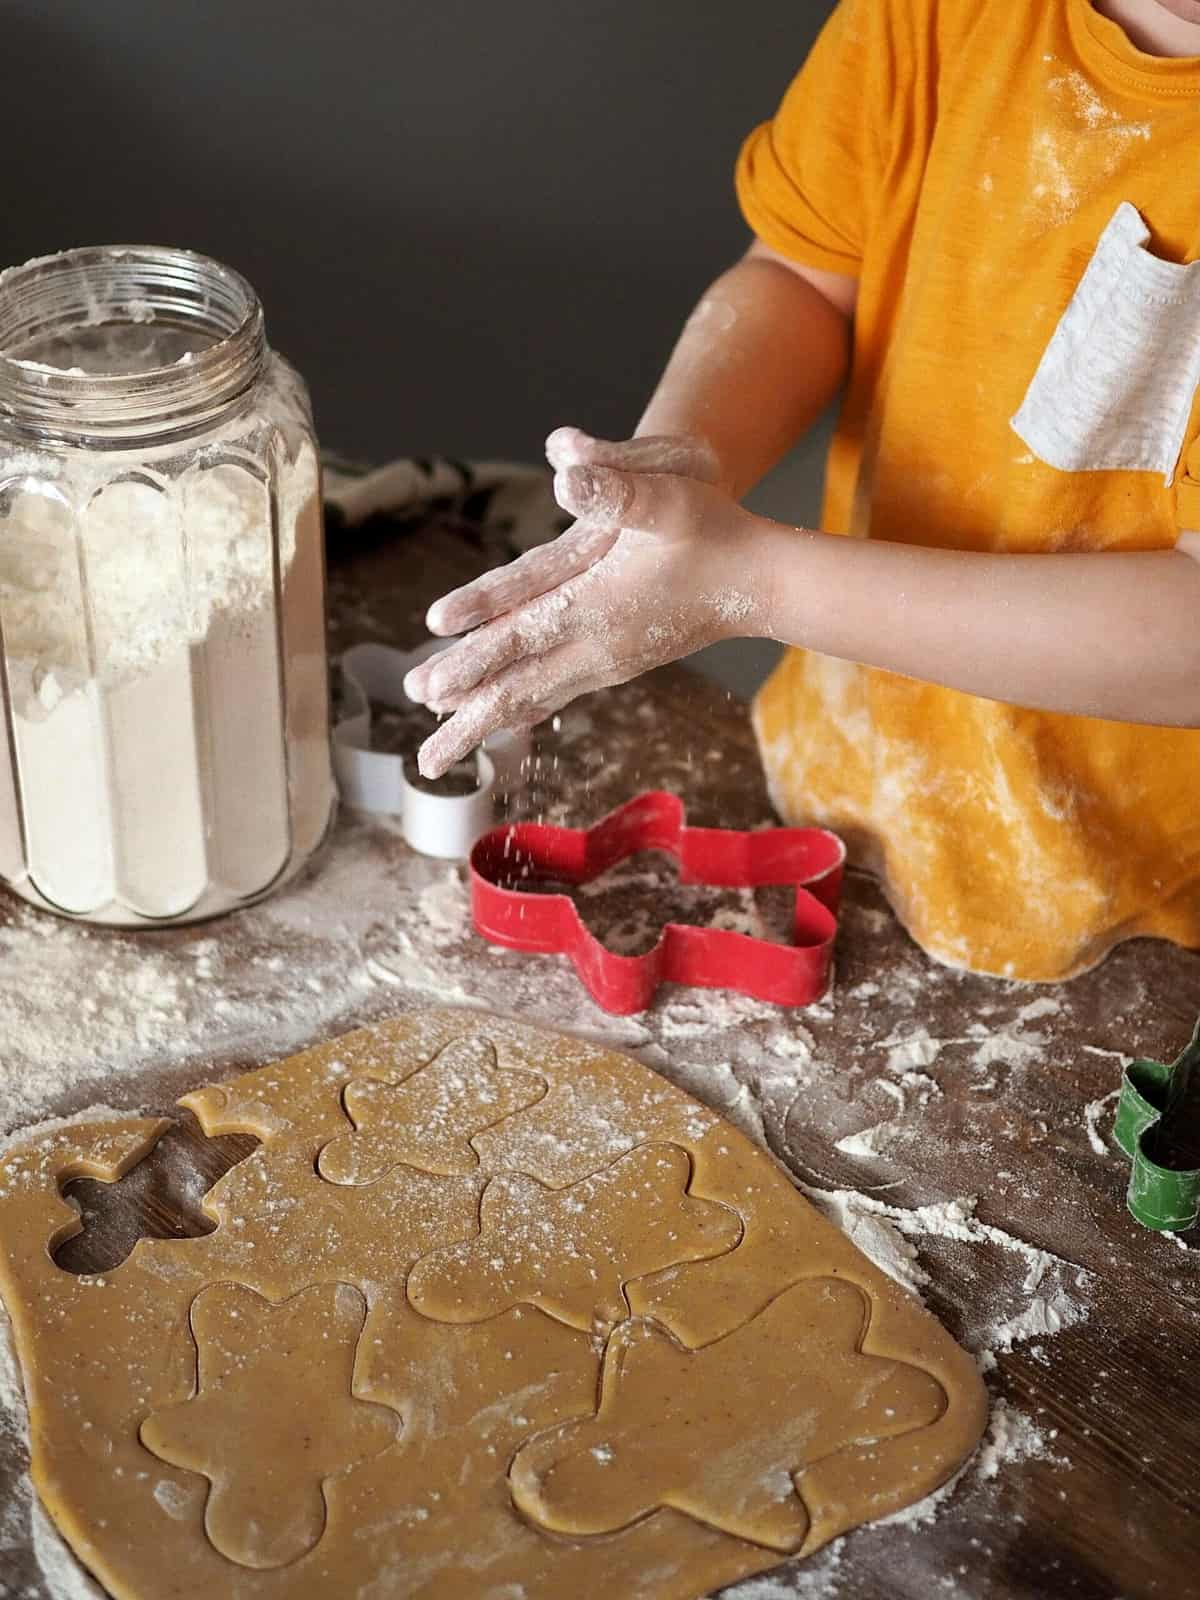 A small child making gingerbread cookies using the healthiest flour.